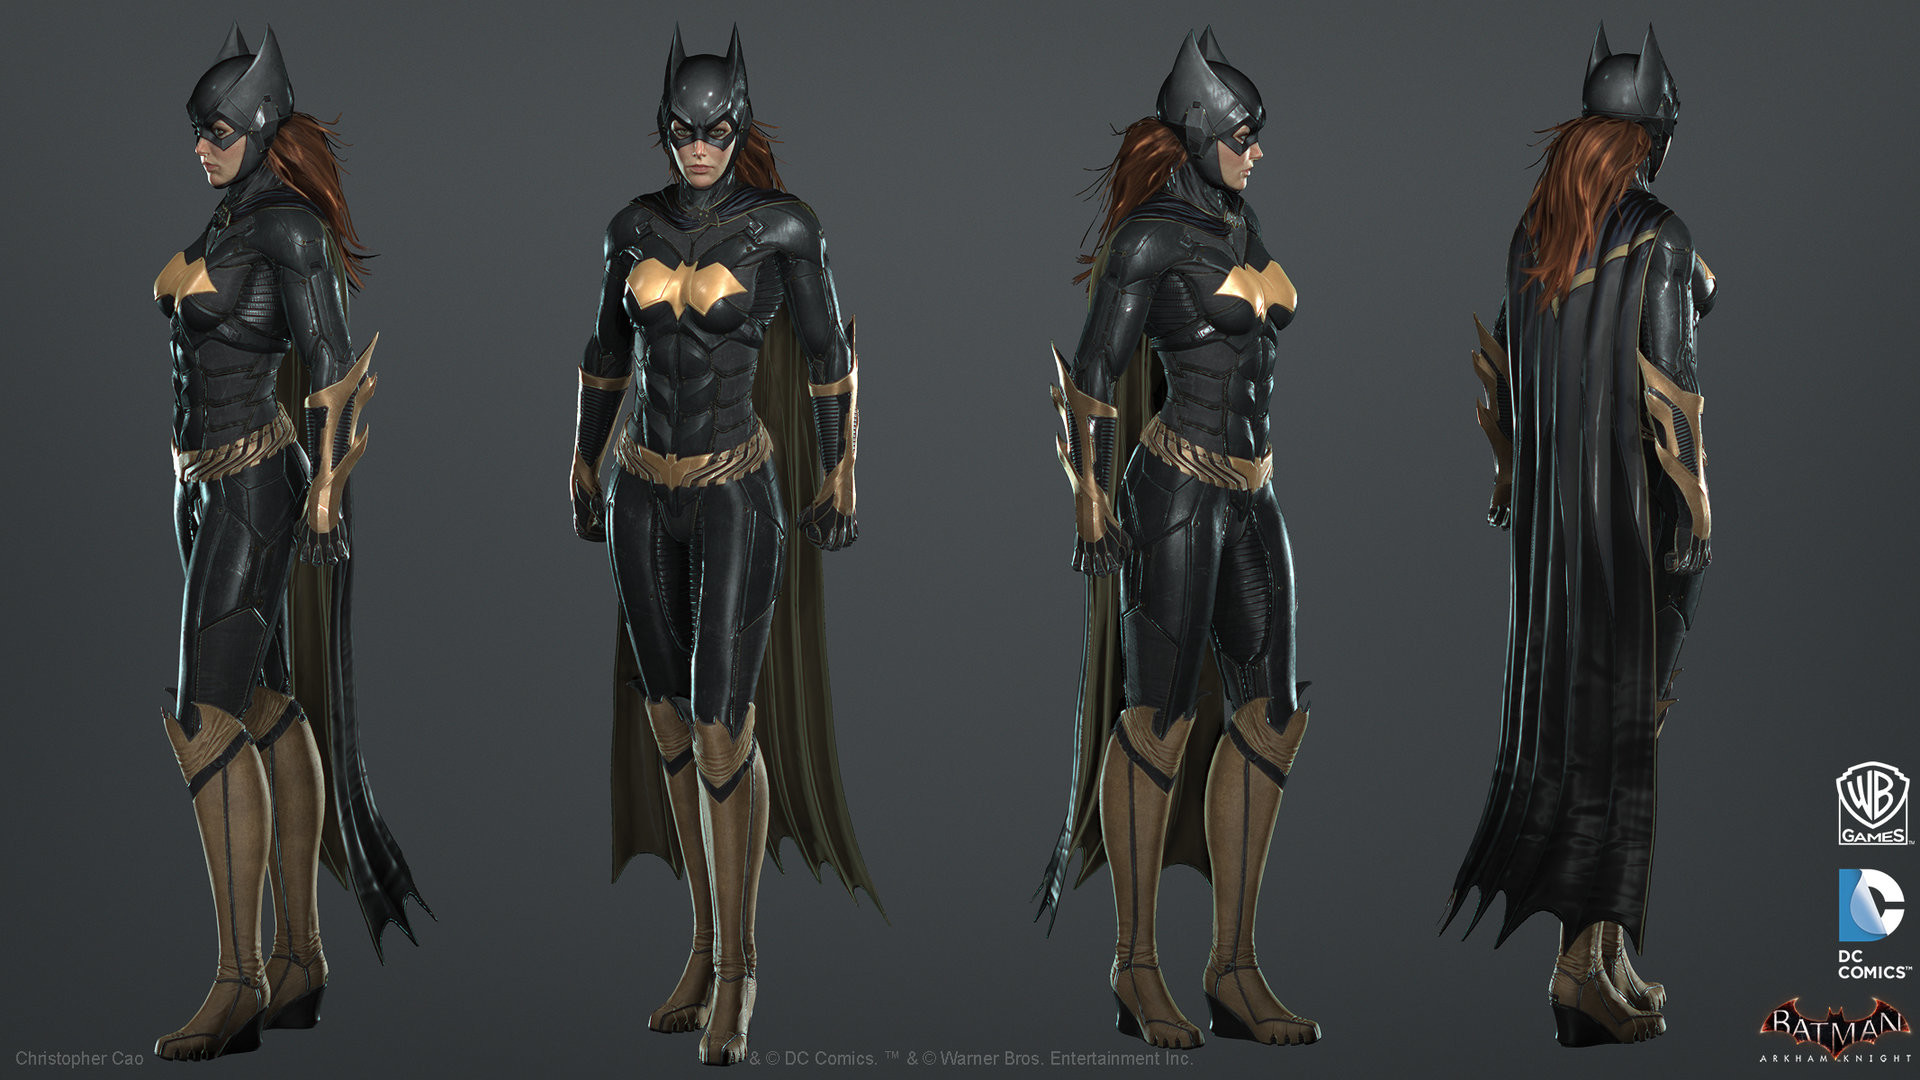 1920x1080 ArtStation - Batman: Arkham Knight DLC, Batgirl Game Model, Christopher Cao